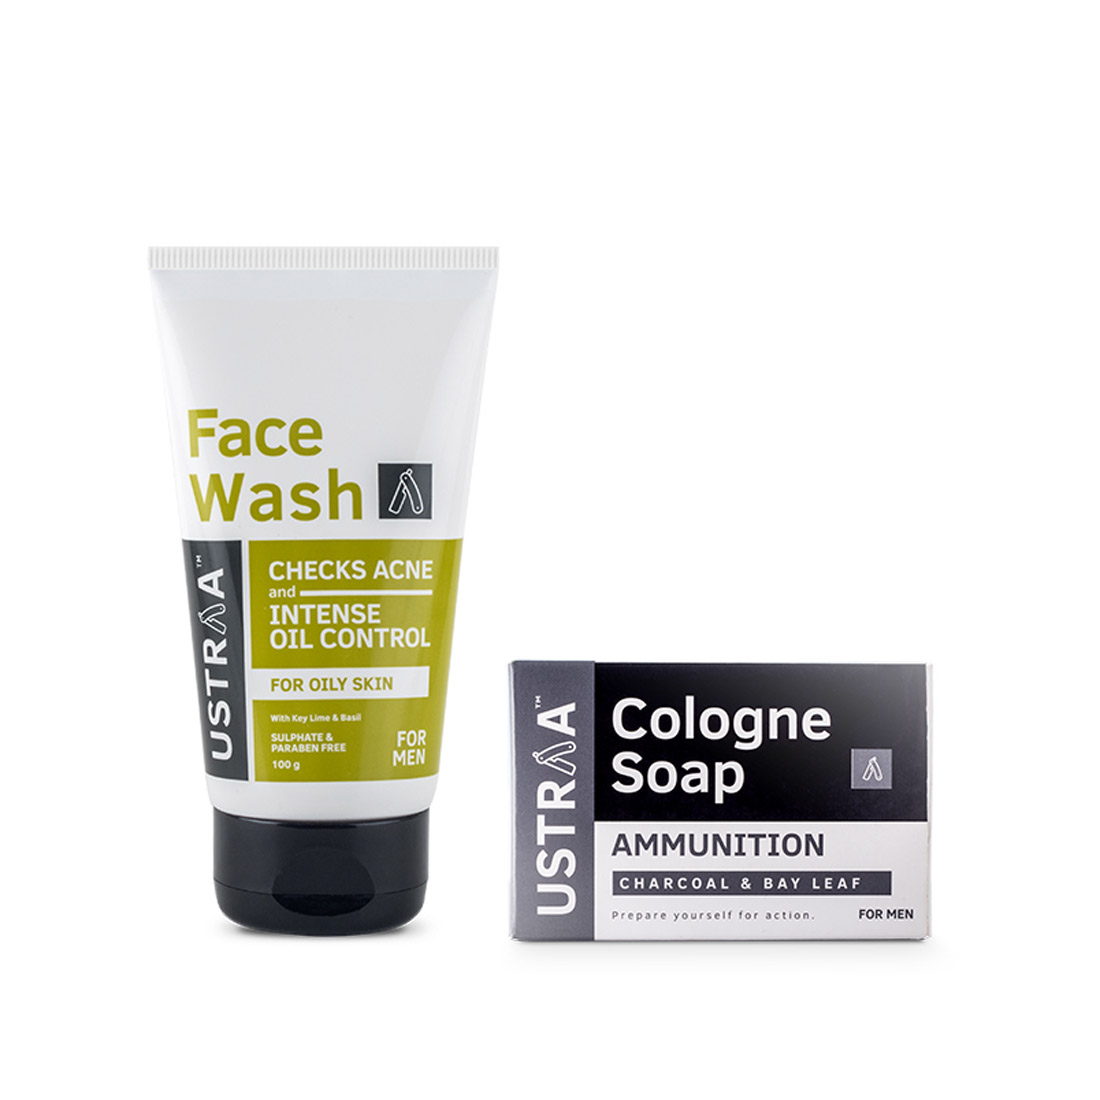 Face Wash - Oily Skin & Cologne Soap - Ammunition